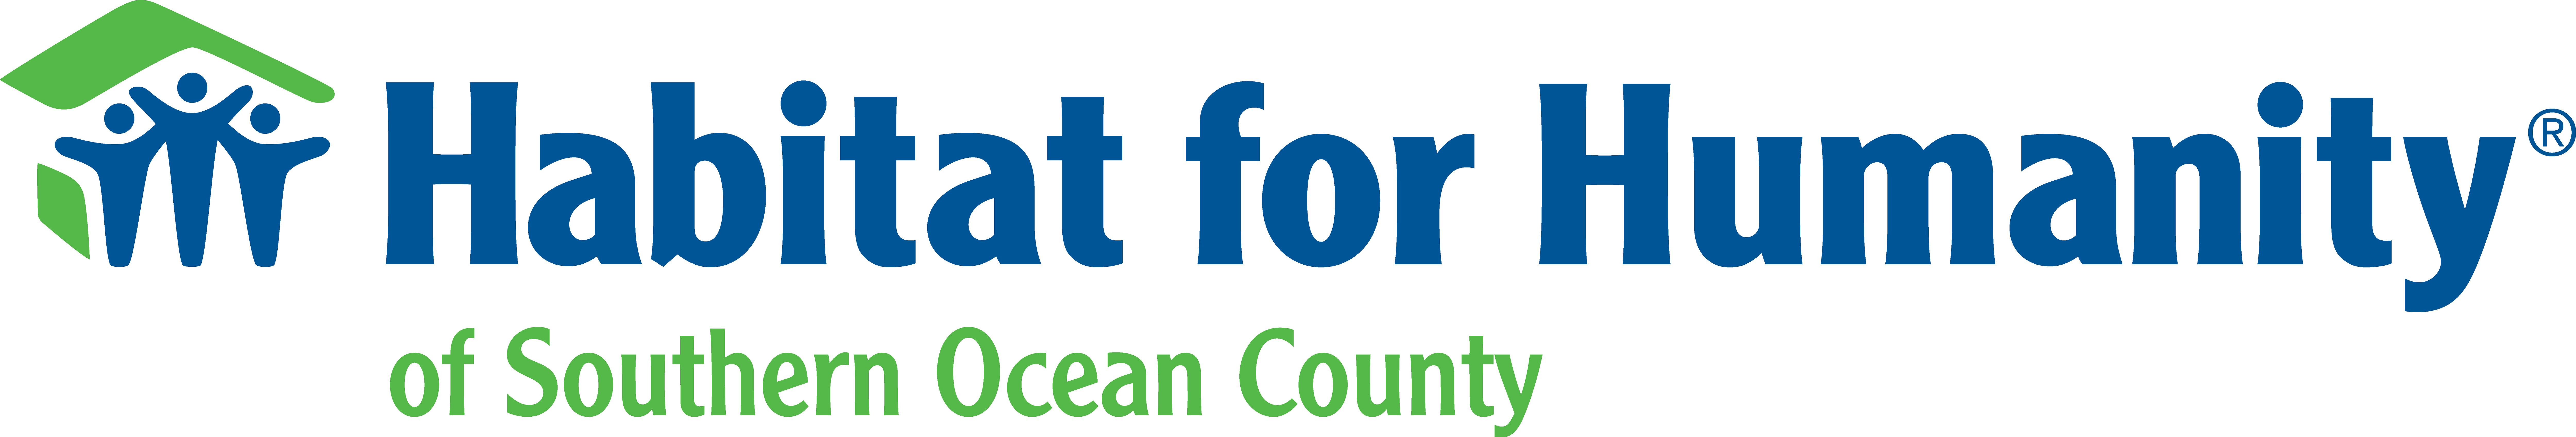 Habitat for Humanity of Southern Ocean County.